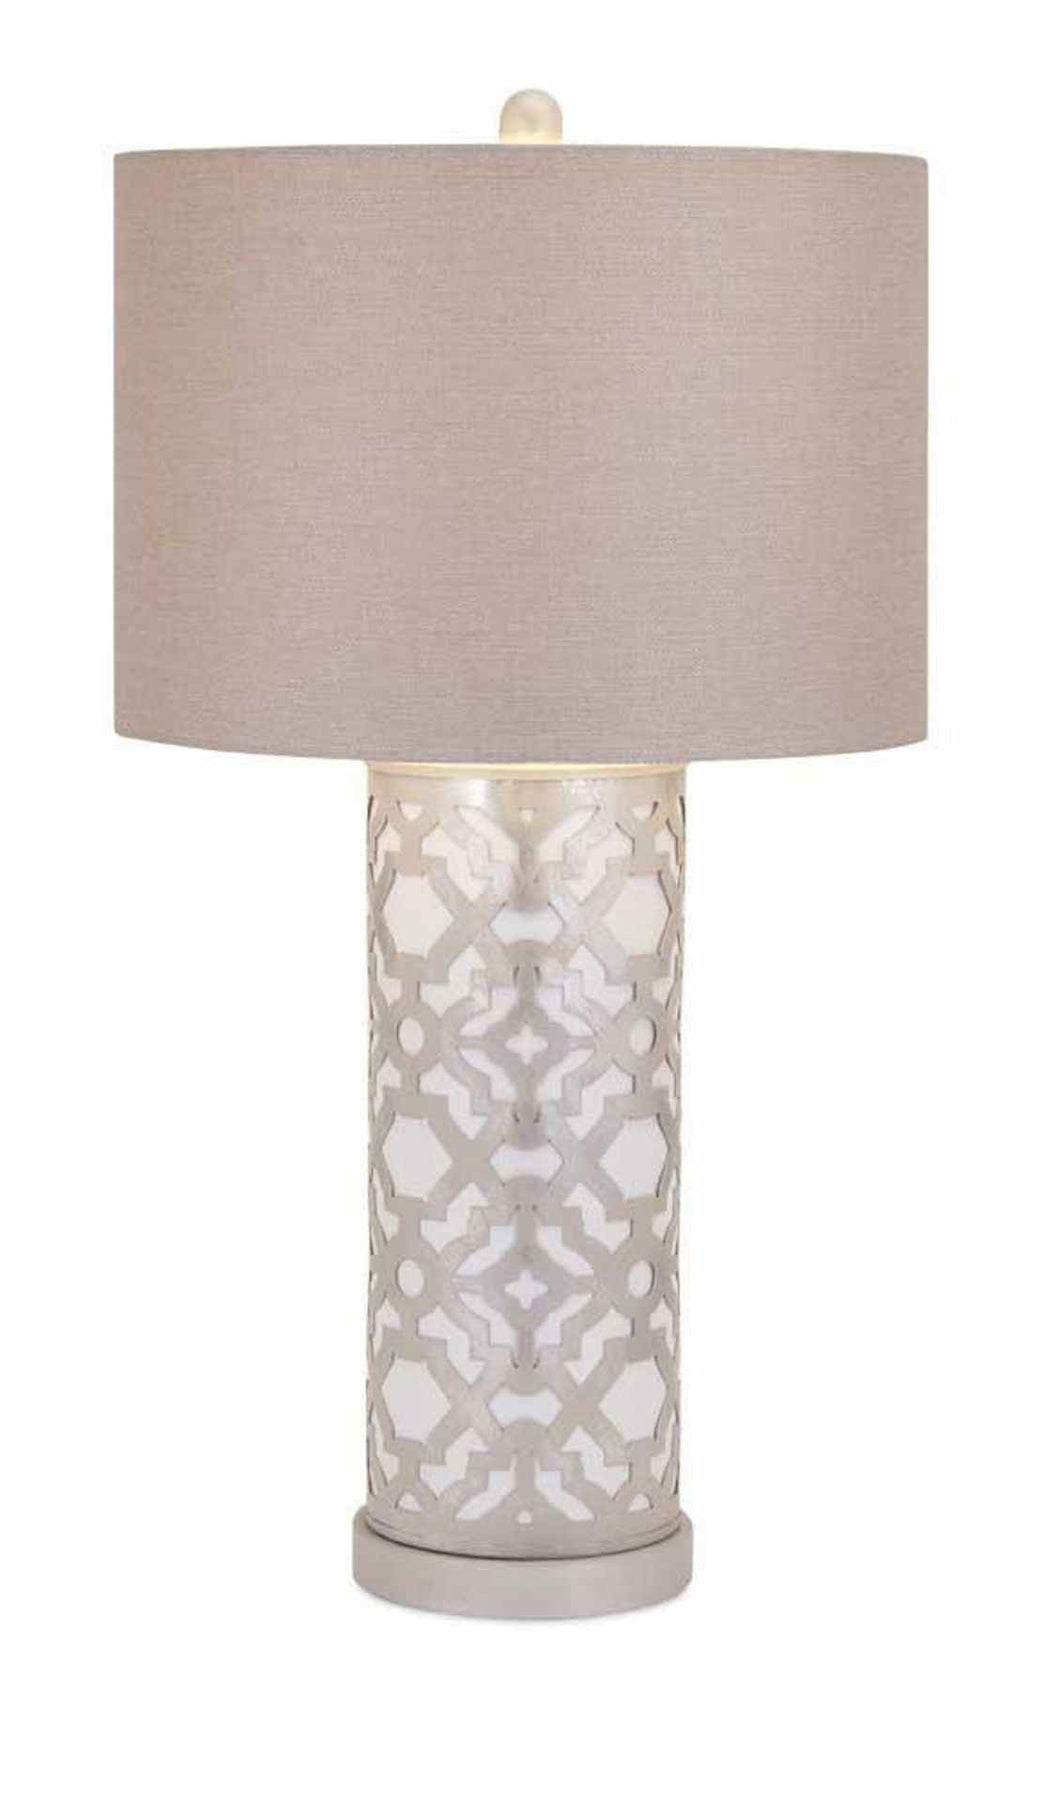 Perkins Table Lamps